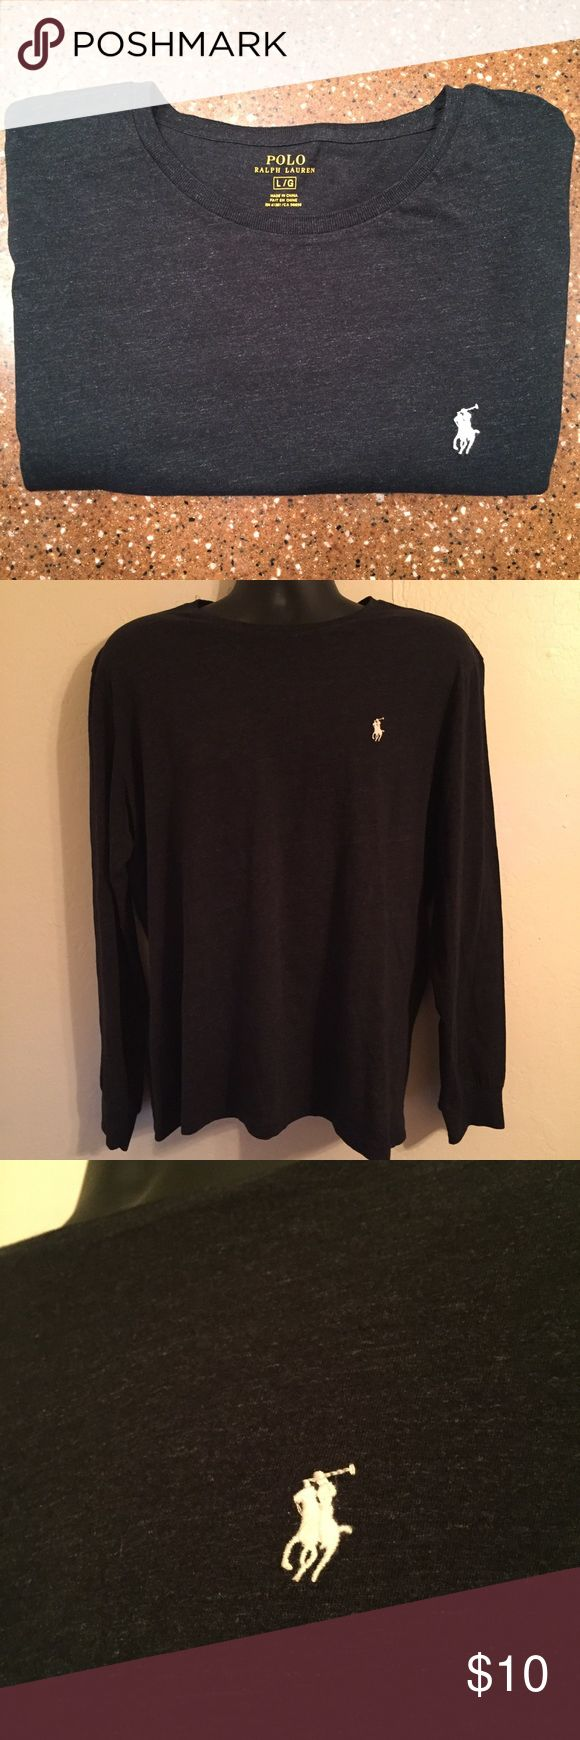 Polo Ralph Lauren Long Sleeve Shirt Large Mens Polo Ralph Lauren Long Sleeve Shirt Large Mens barely worn Polo by Ralph Lauren Shirts Tees - Long Sleeve